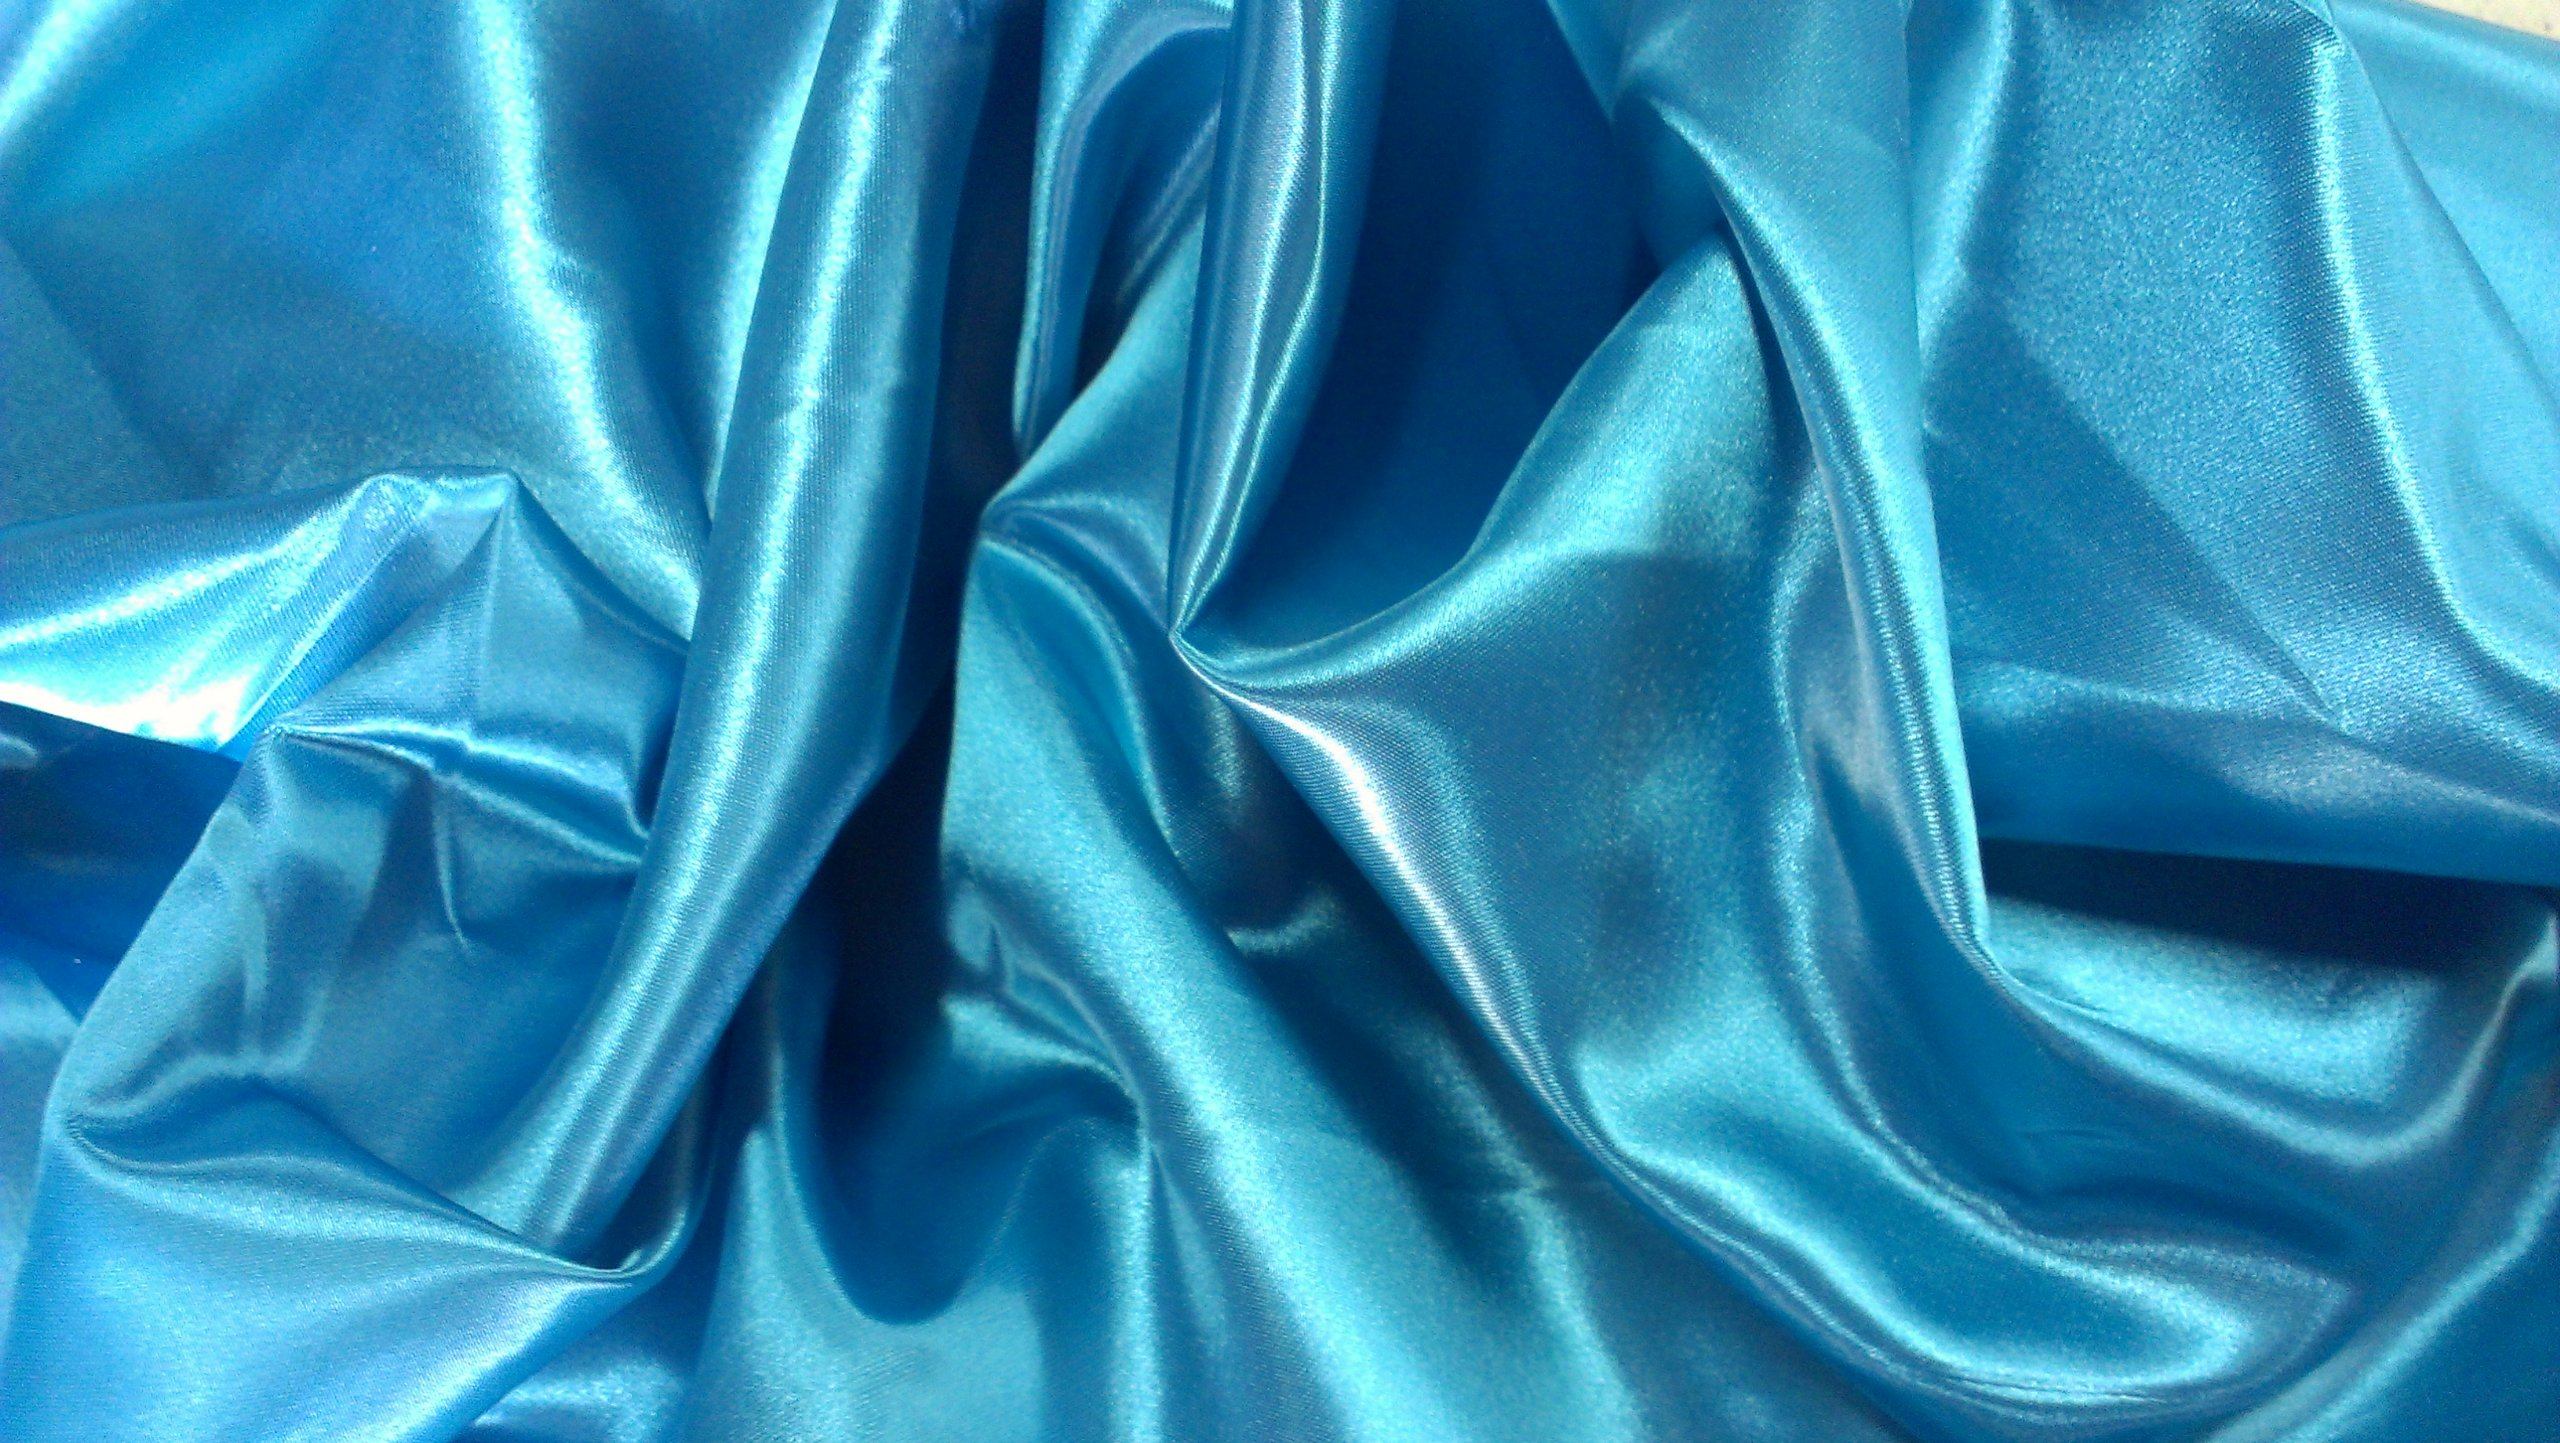 Satin Aisle Runner 50Ft 5 Ft wide - wedding, red carpet events - seamless (Turquoise) by Linen Superstore